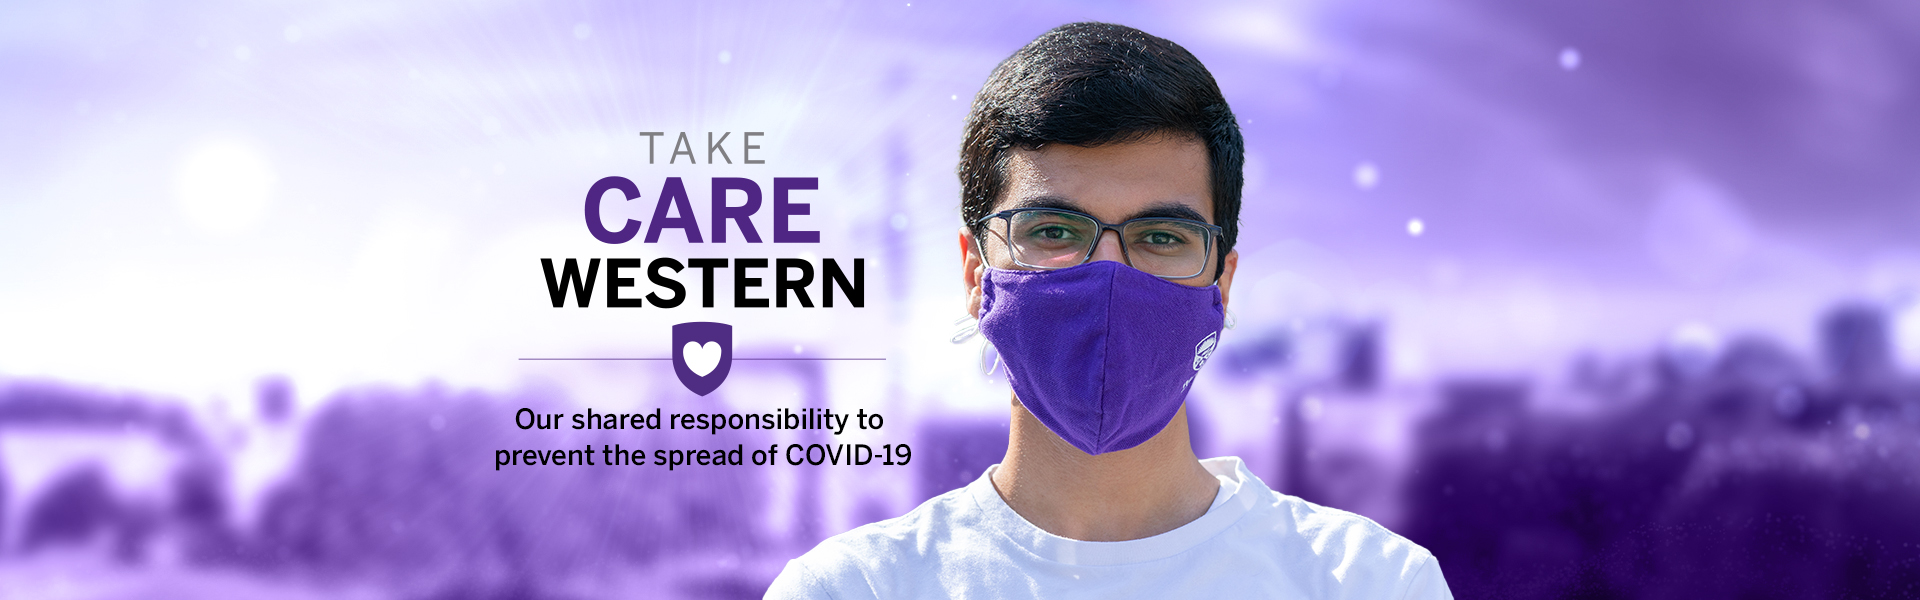 Our shared responsibility to prevent the spread of COVID-19